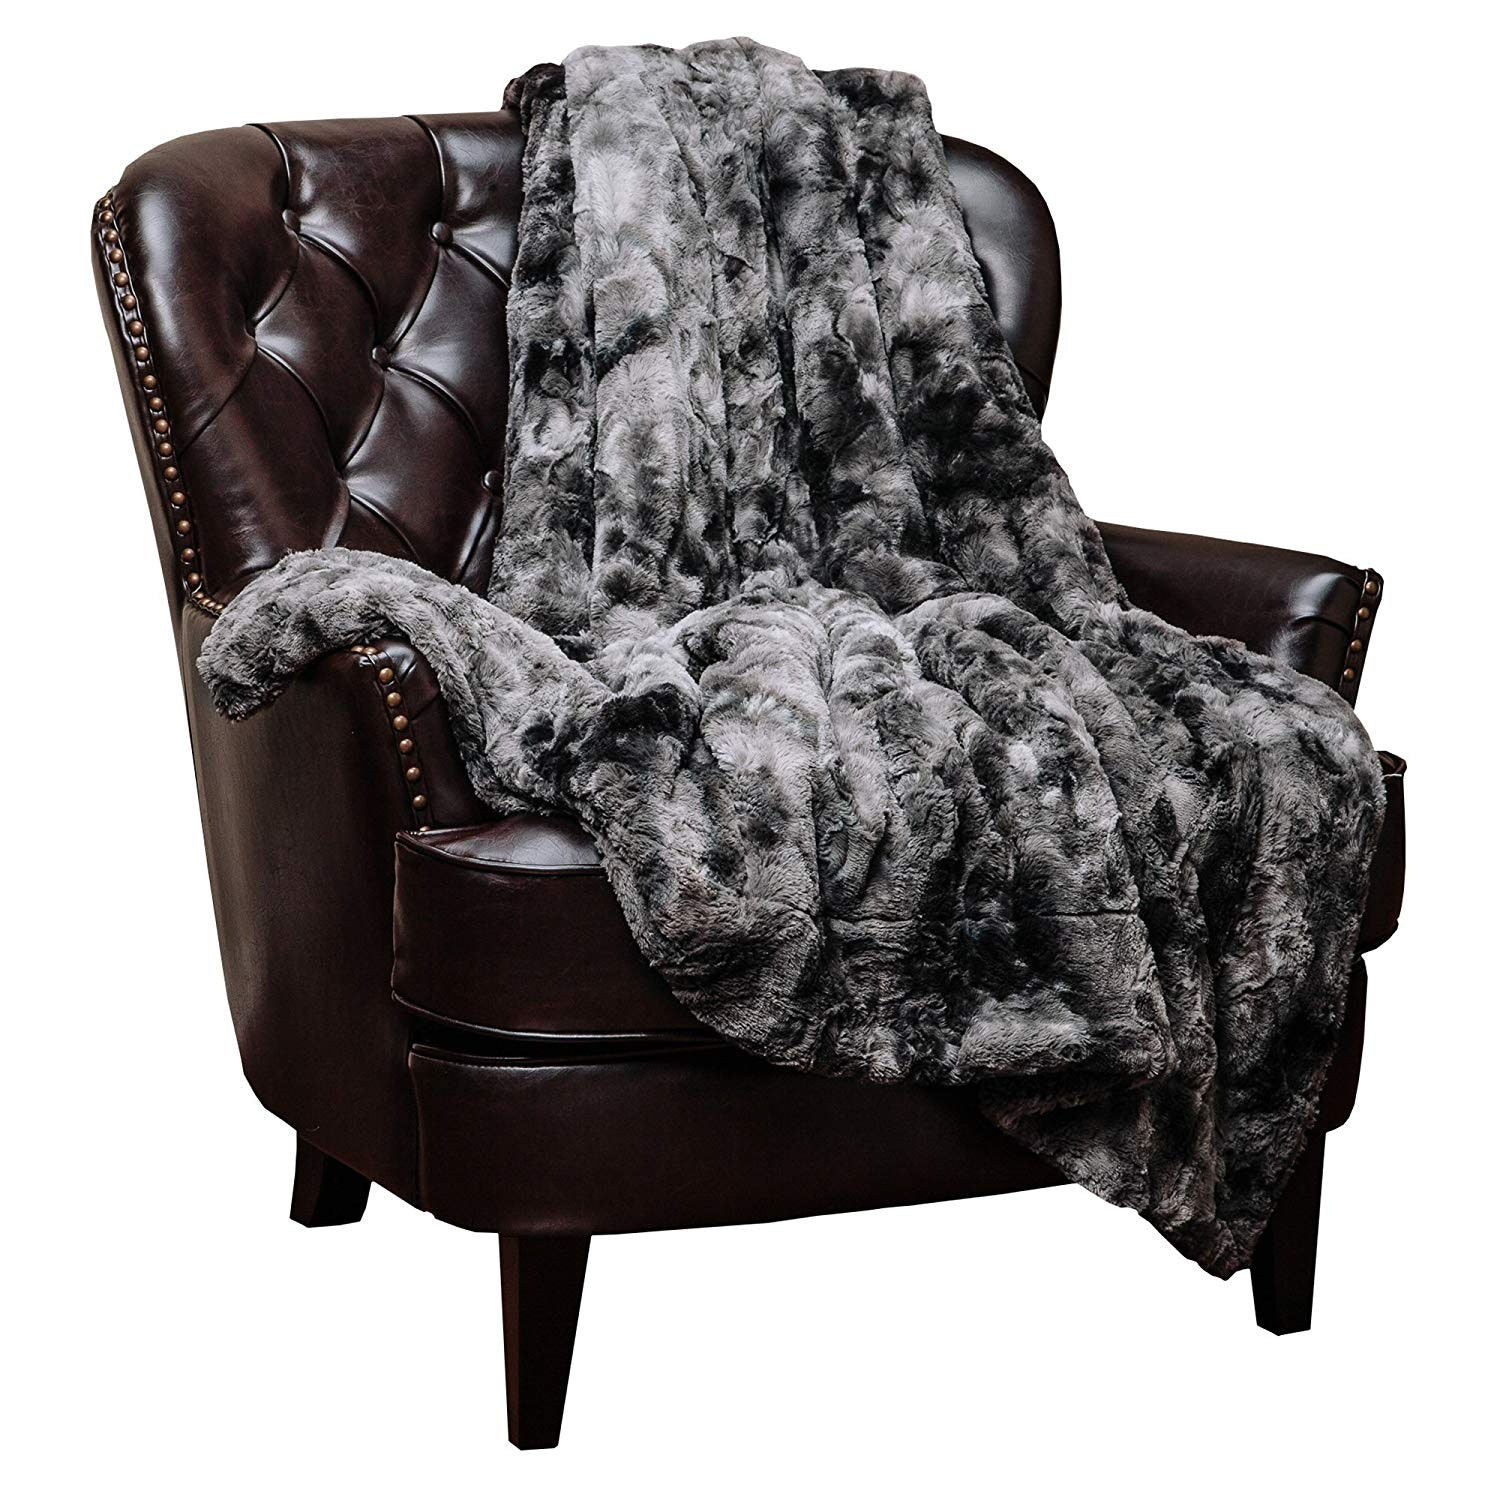 amazon dental chair covers antique chairs pictures 51 five star products on that thousands of reviewers are right to love